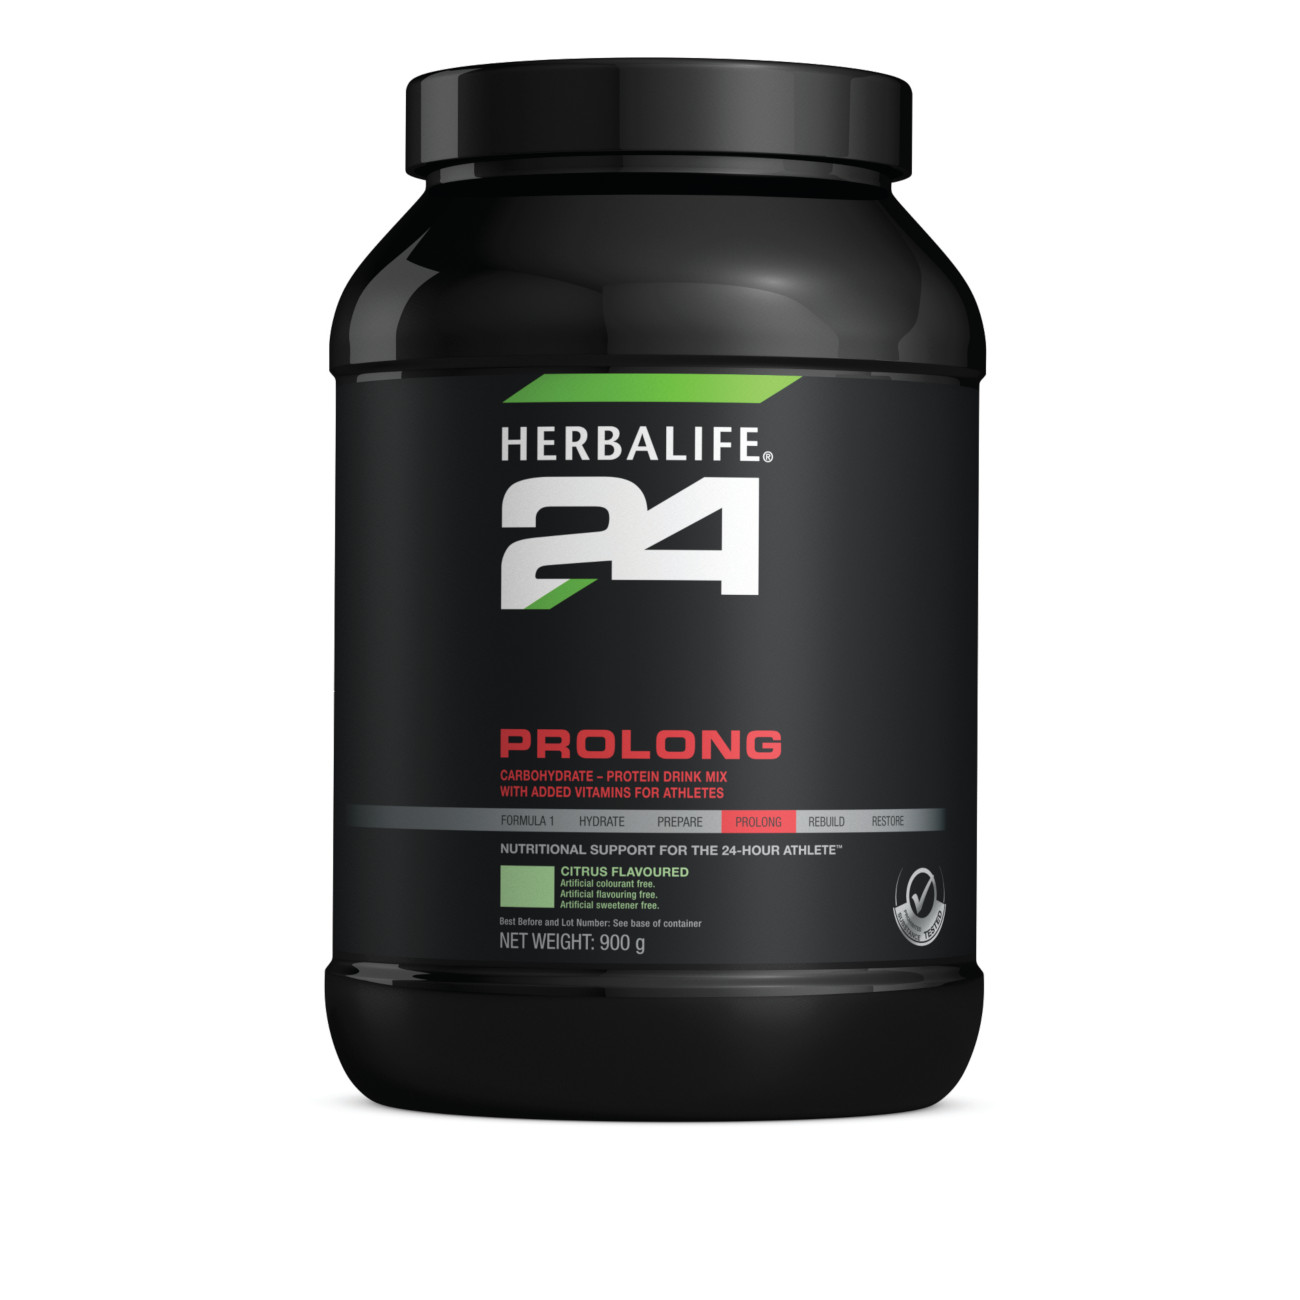 Herbalife24® Prolong Carbohydrate-Protein Drink Mix Citrus Flavoured product shot